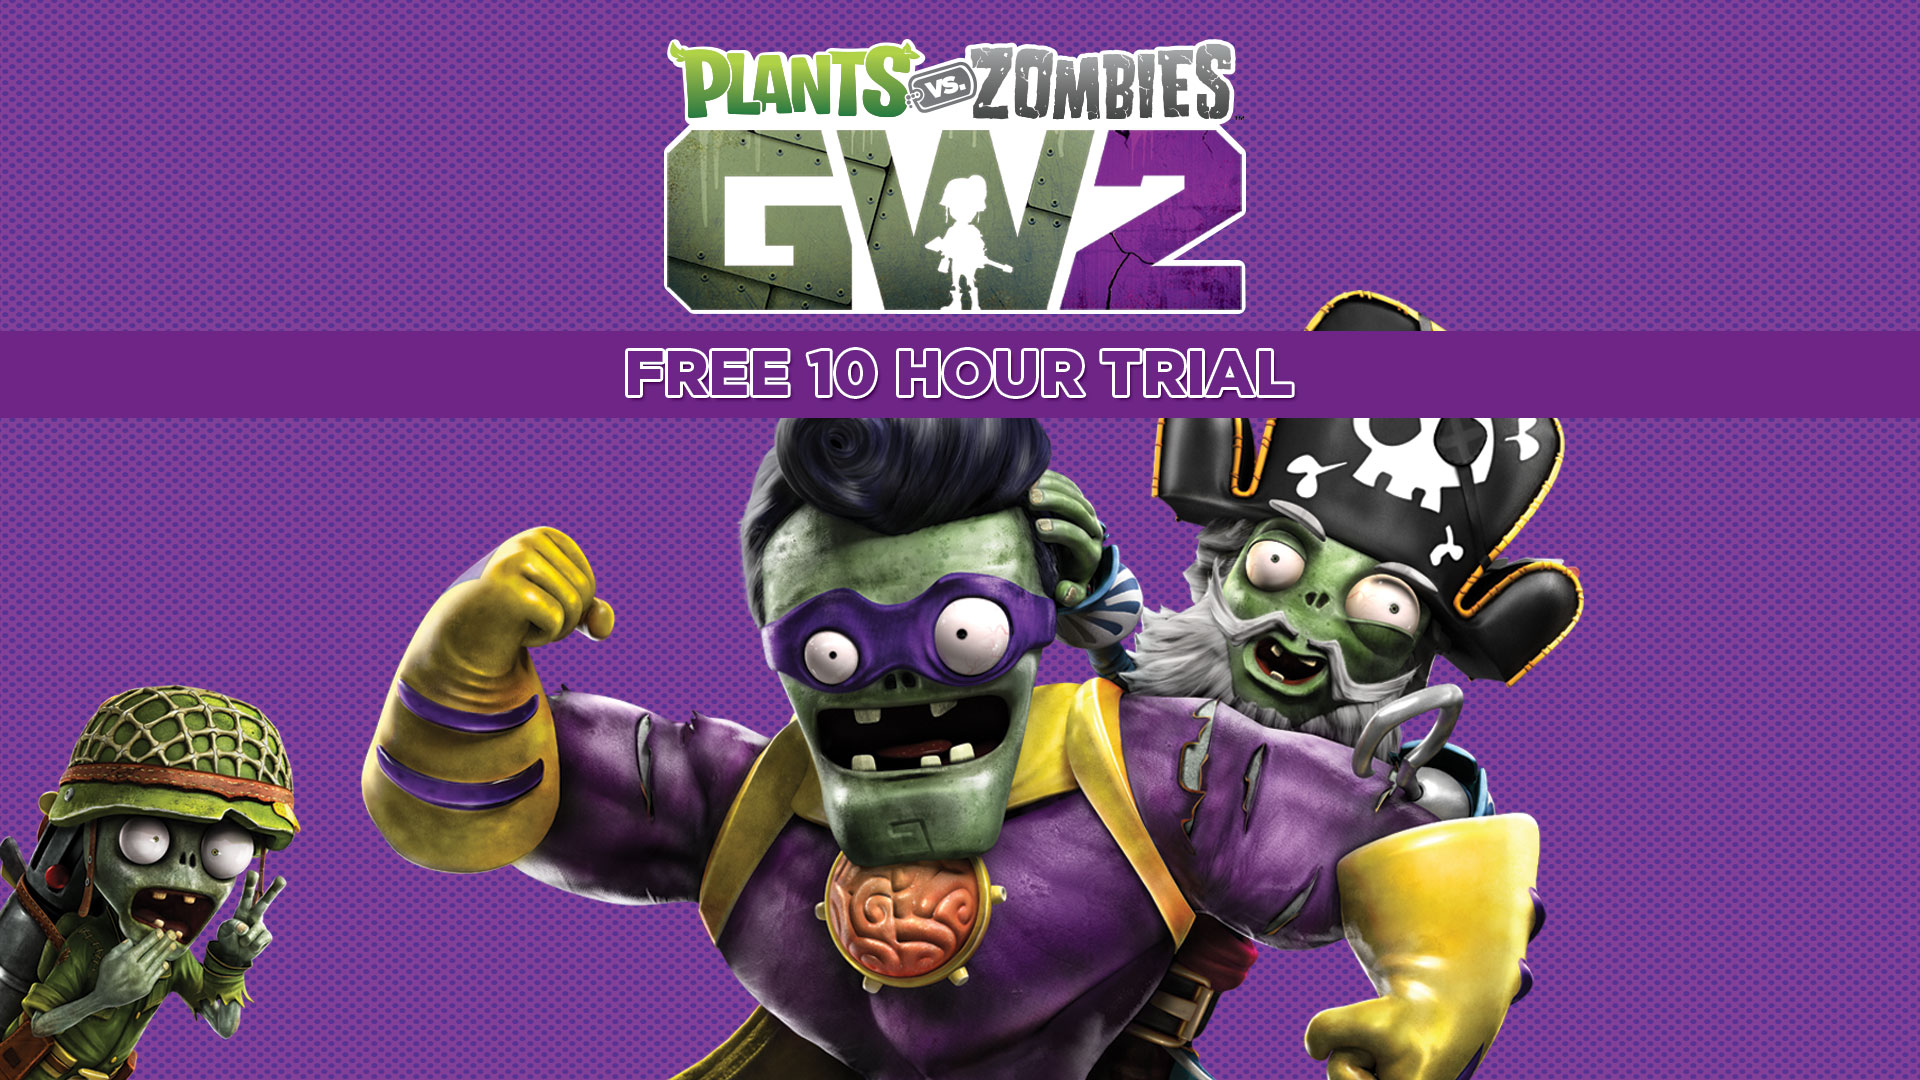 You Can Play Plants Vs Zombies Garden Warfare 2 Free For Up To 10 Hours Playstation 4